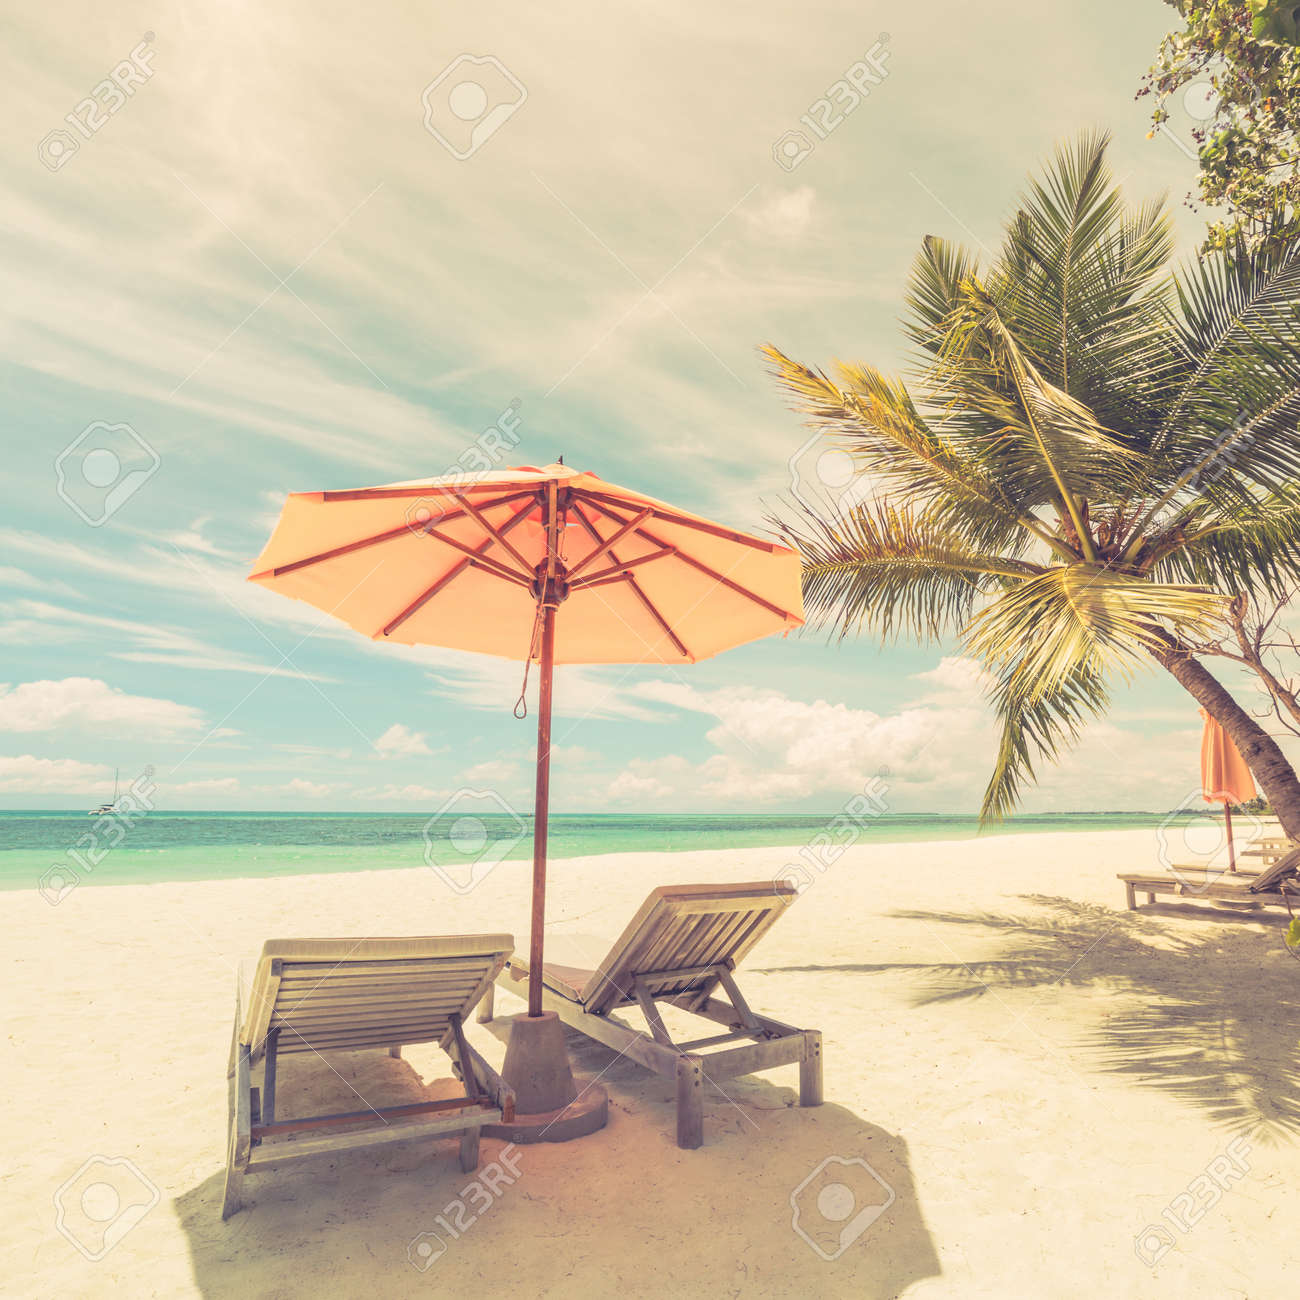 Ordinaire Stock Photo   Vacation Holidays Background Wallpaper, Two Beach Lounge  Chairs Under Tent On Beach. Beach Chairs, Umbrella And Palms On The Beach.